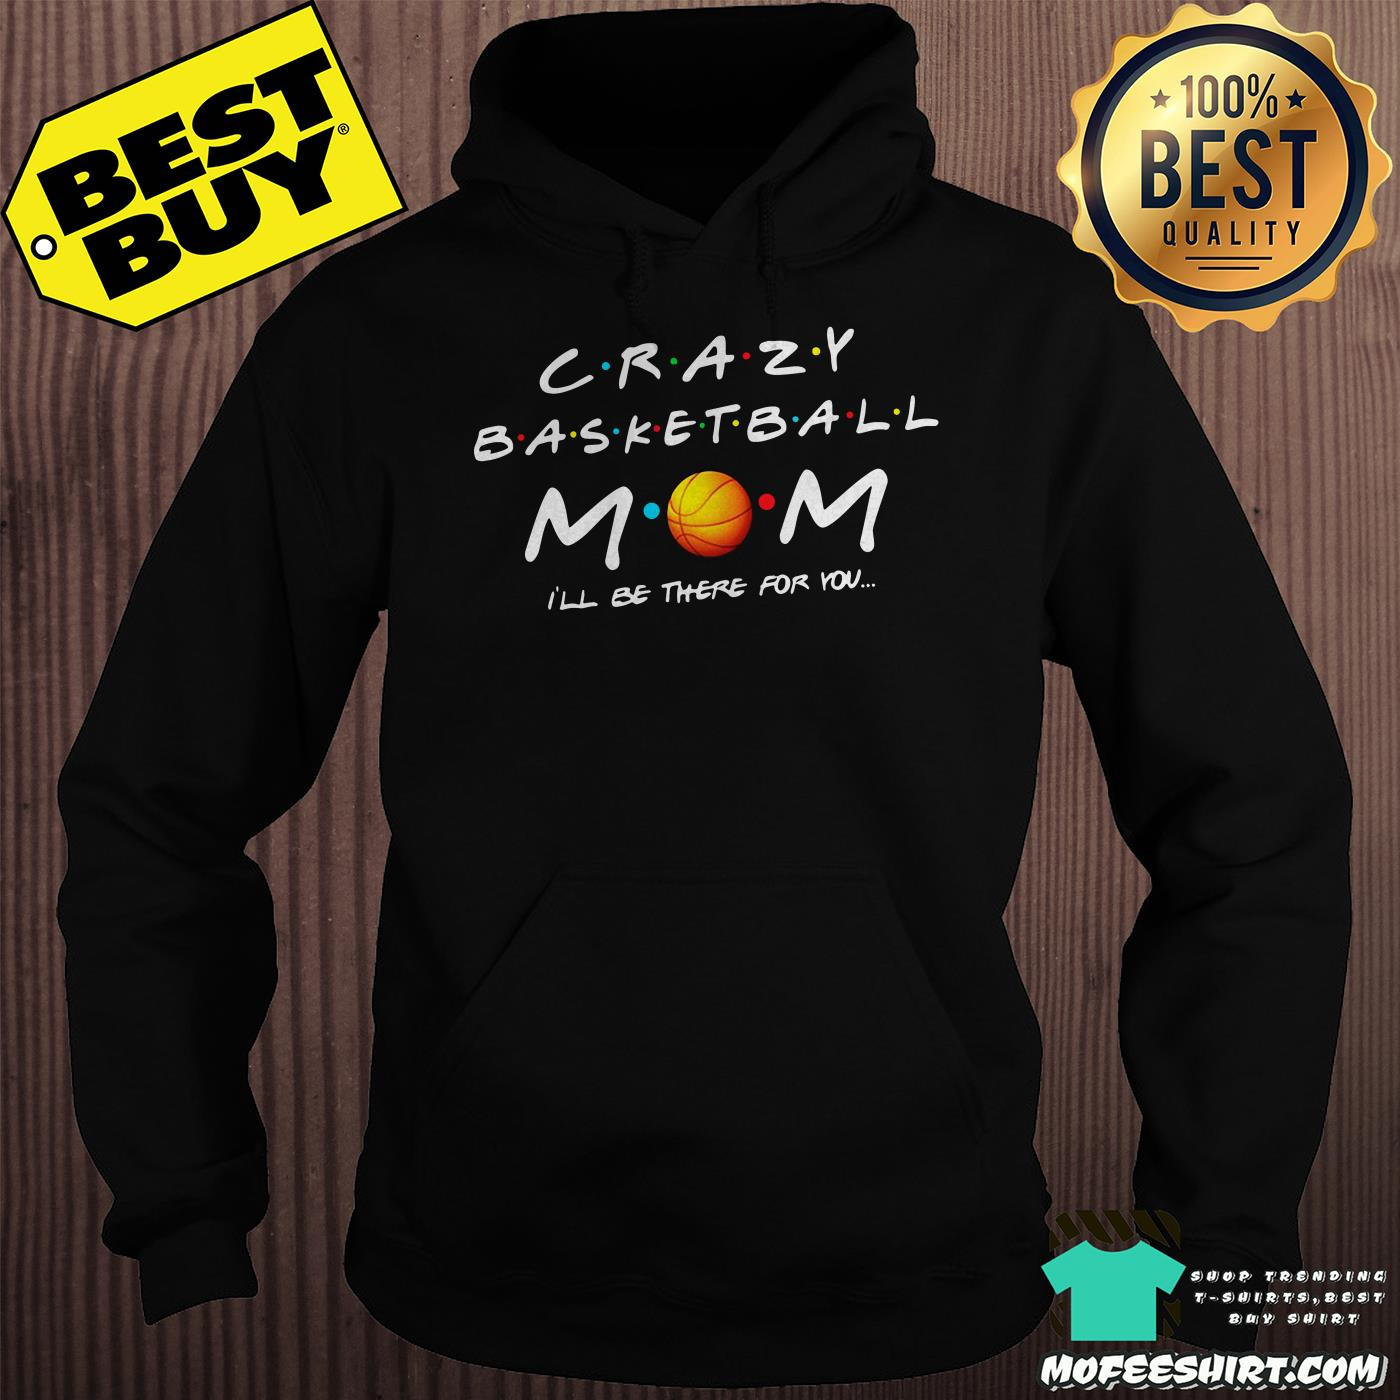 crazy basketball mom ill be there for you hoodie - Crazy Basketball Mom I'll be there for you shirt